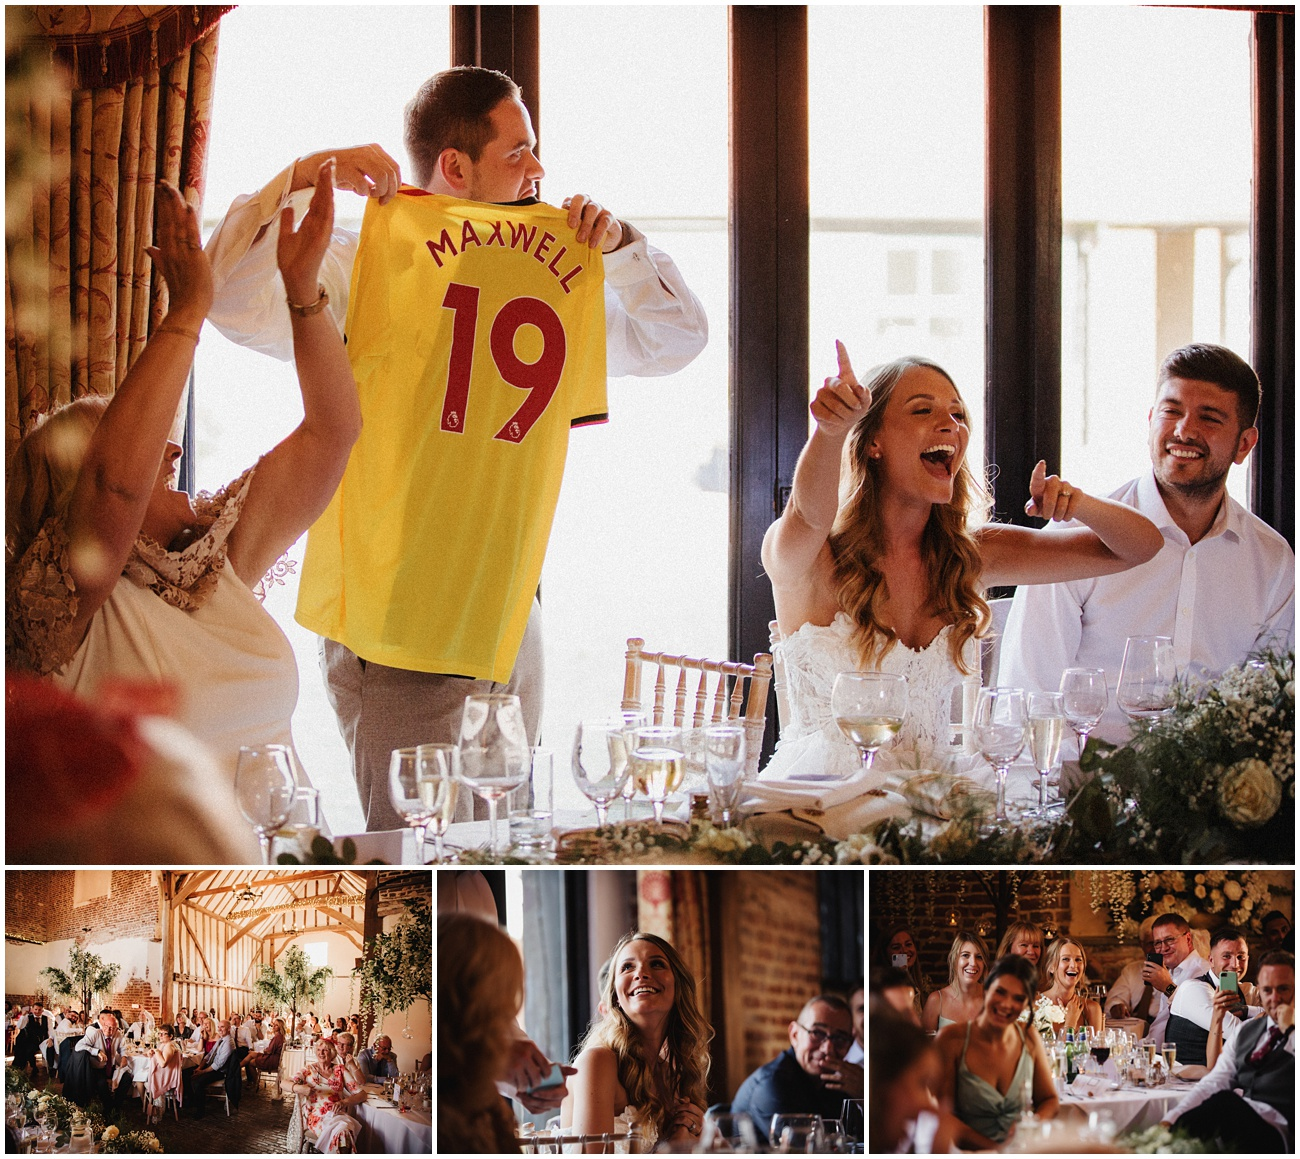 Best man shows the groom a Watford shirt during the speeches